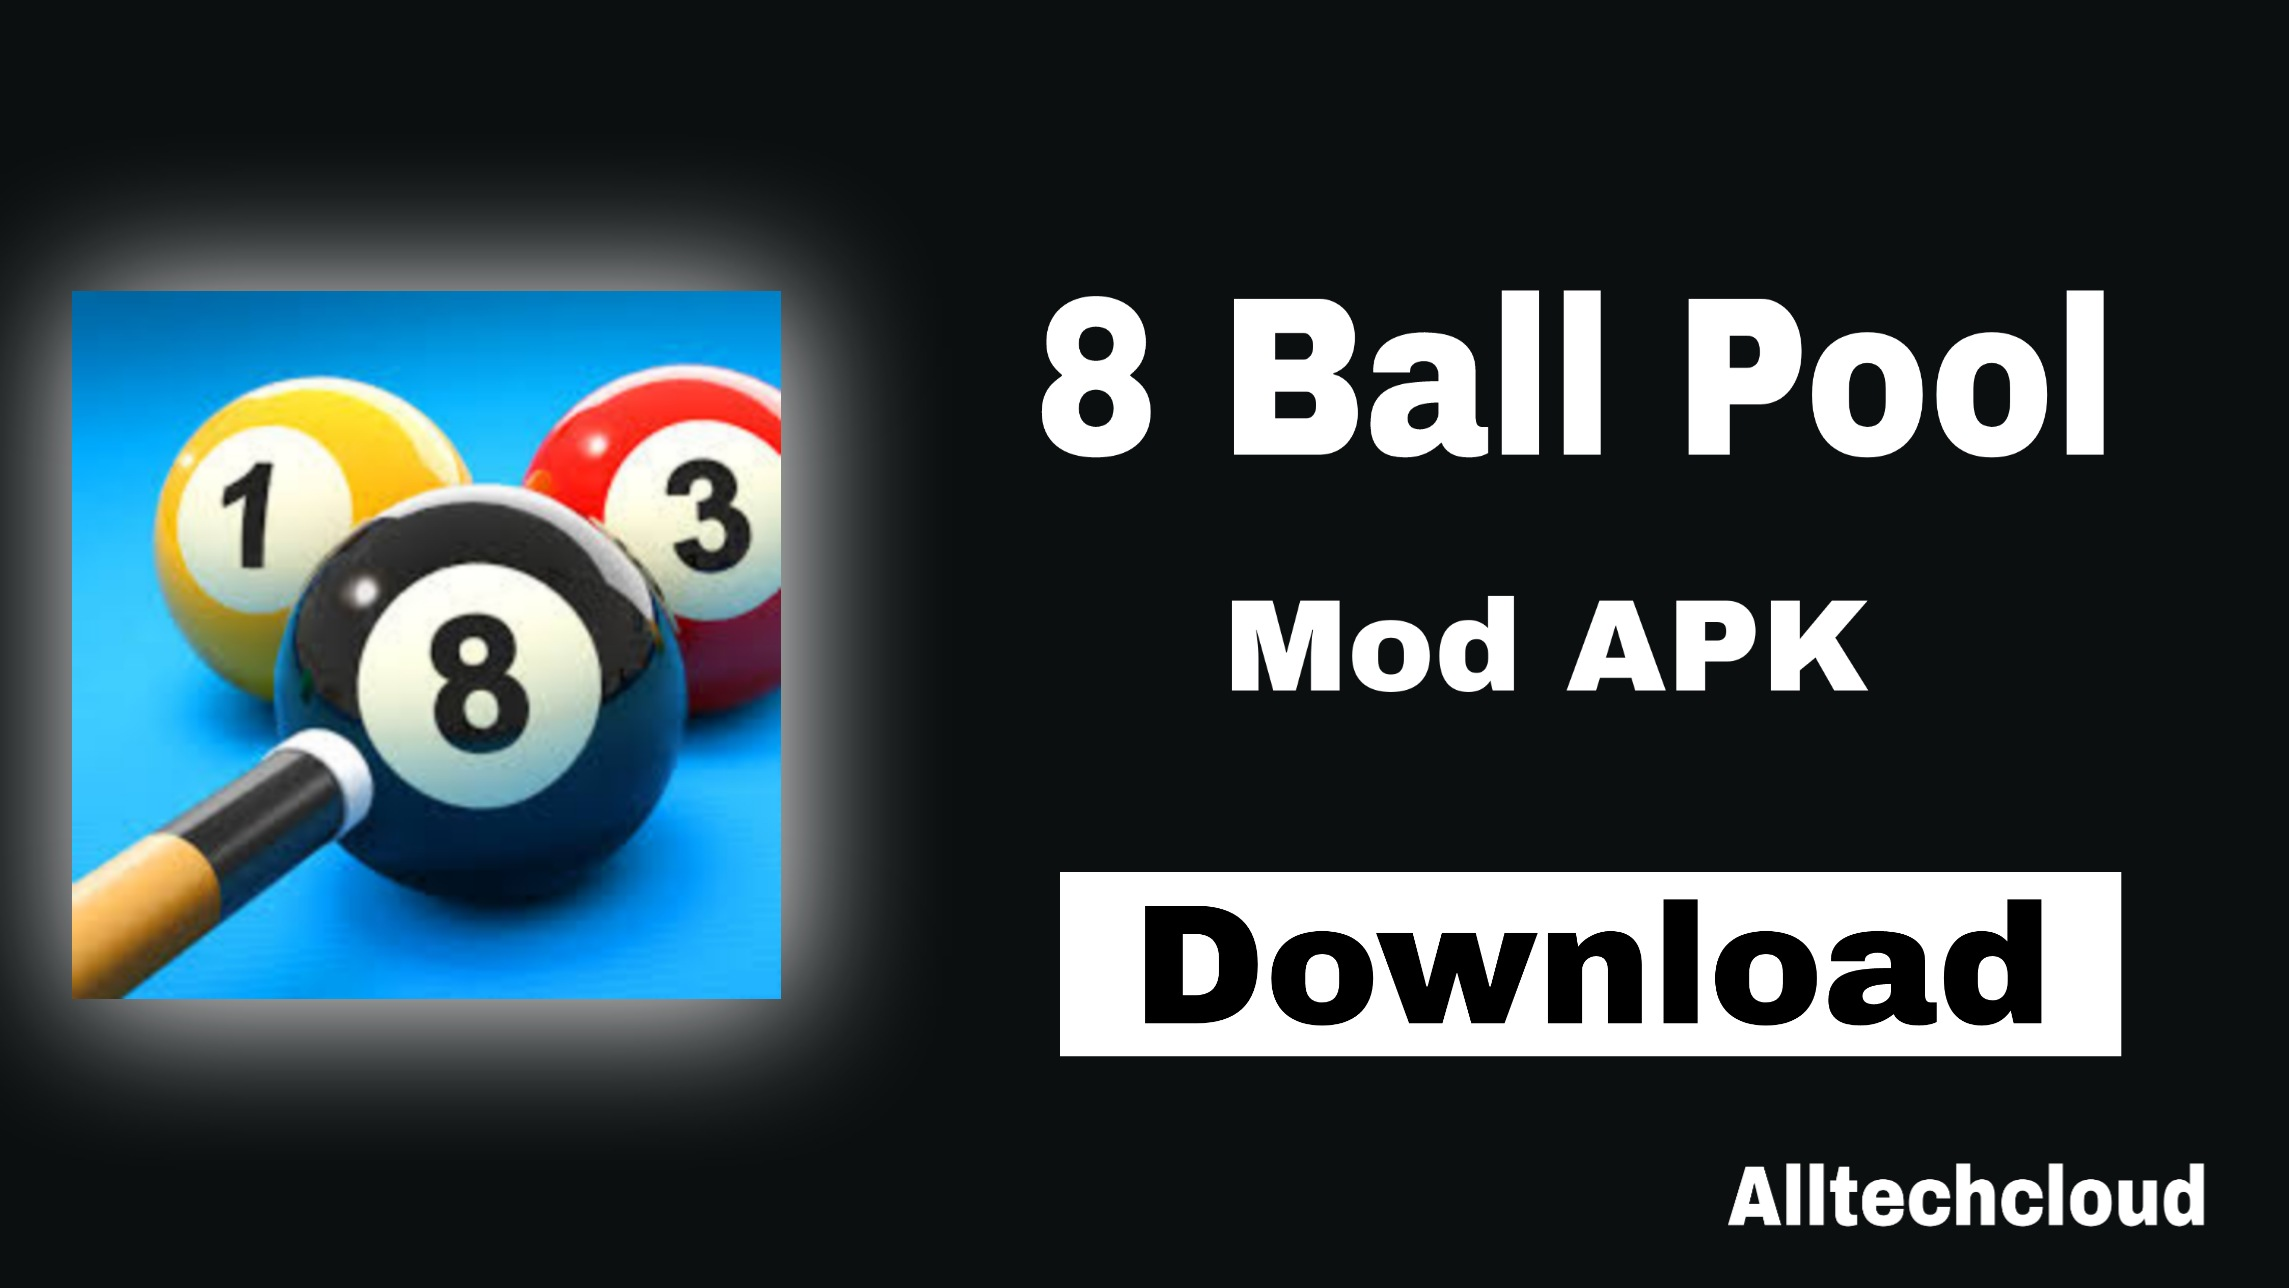 8 Ball Pool Mod APK v5.4.5 (Long Lines) for Android 2021 [Updated]